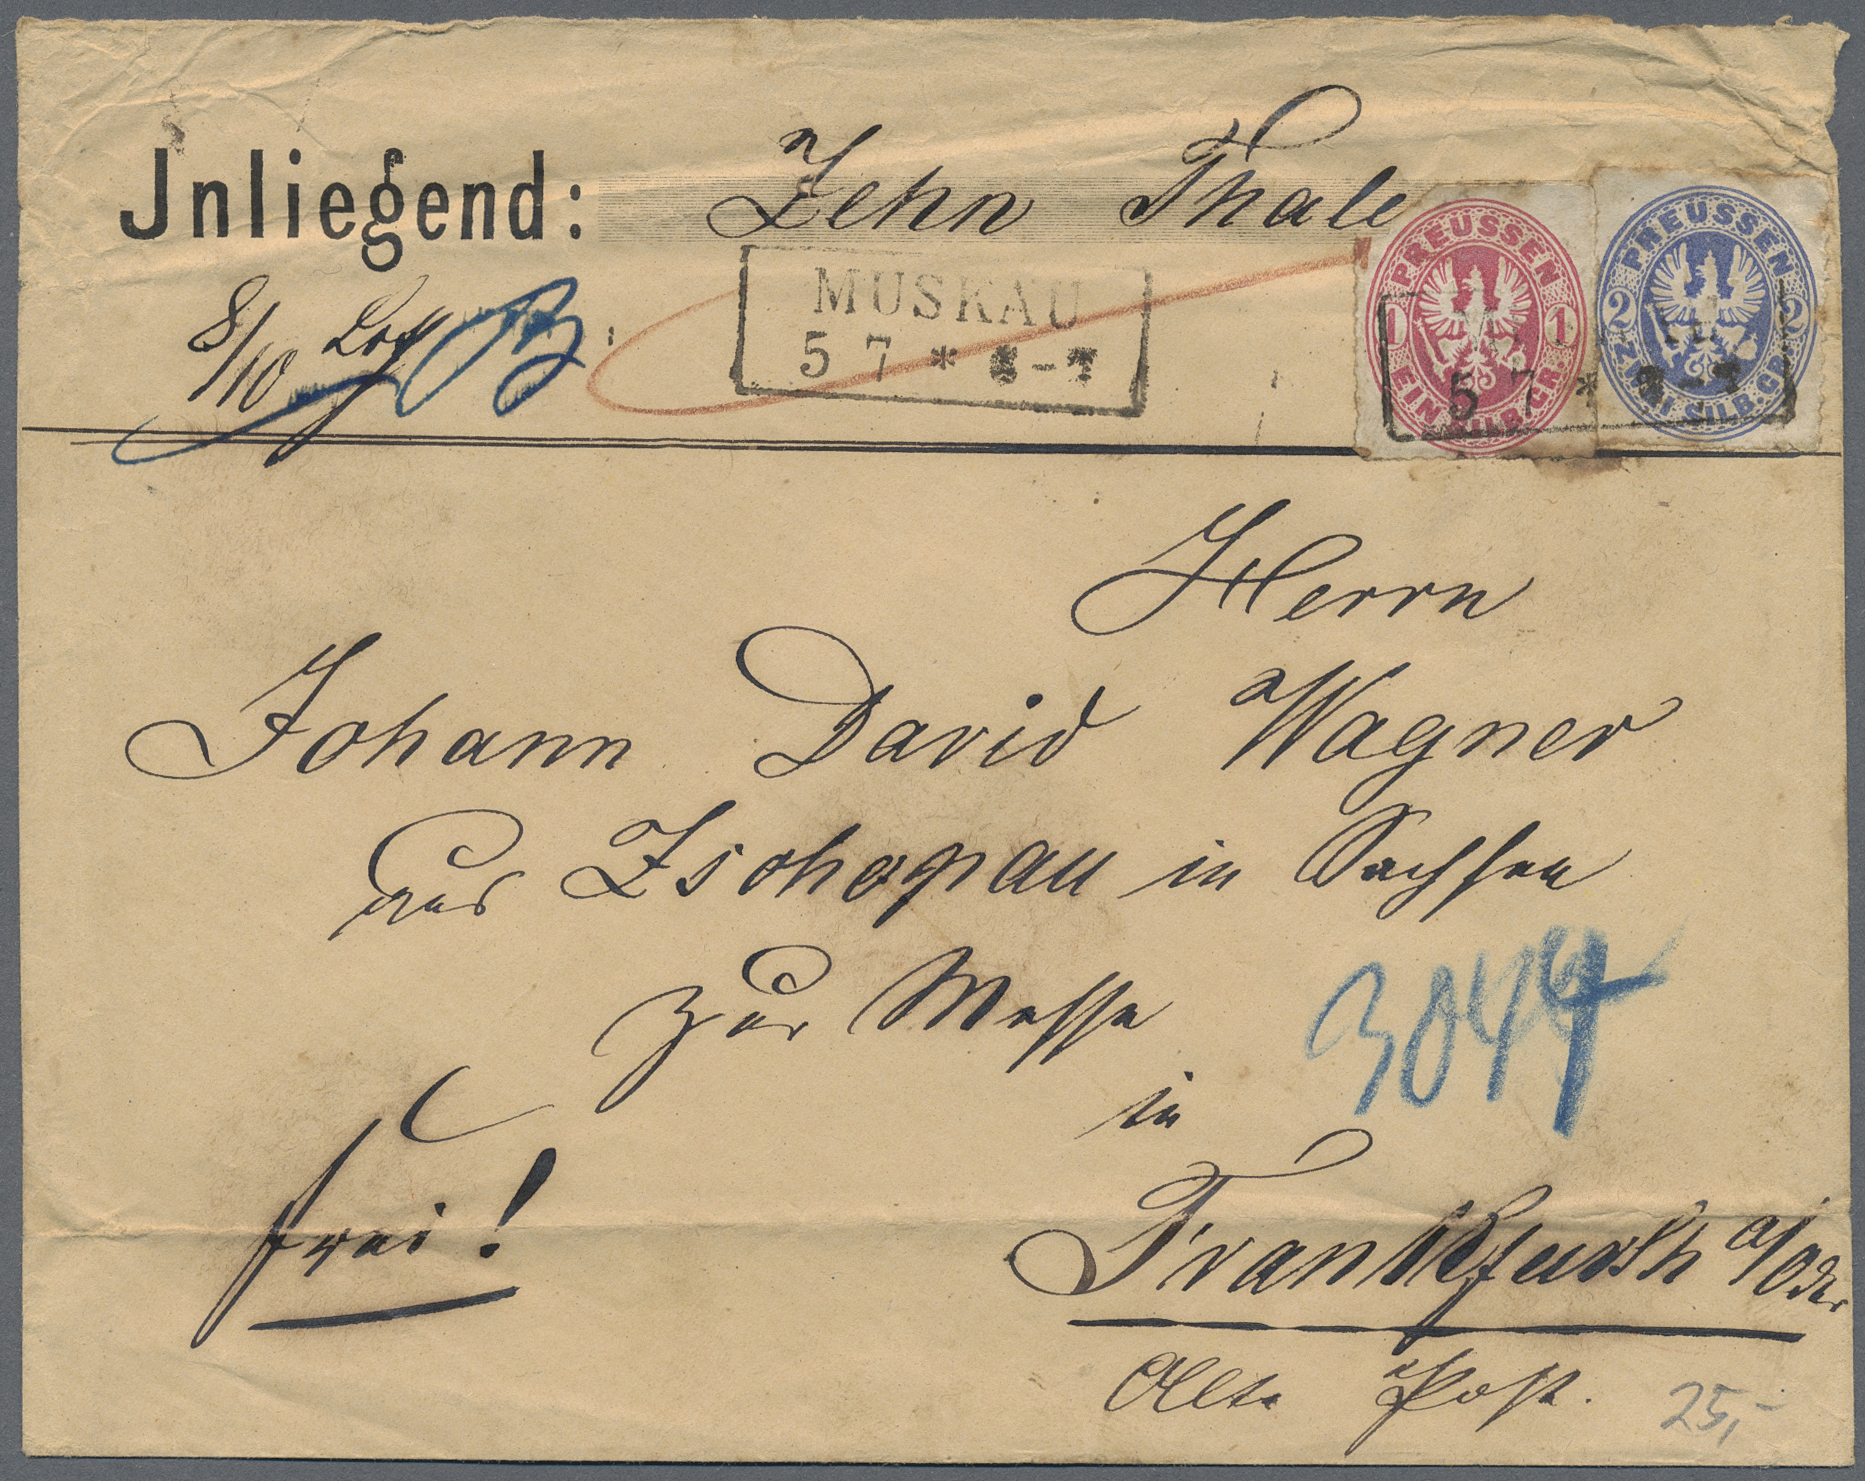 Lot 36435 - Preußen - Marken und Briefe  -  Auktionshaus Christoph Gärtner GmbH & Co. KG Collections Germany,  Collections Supplement, Surprise boxes #39 Day 7